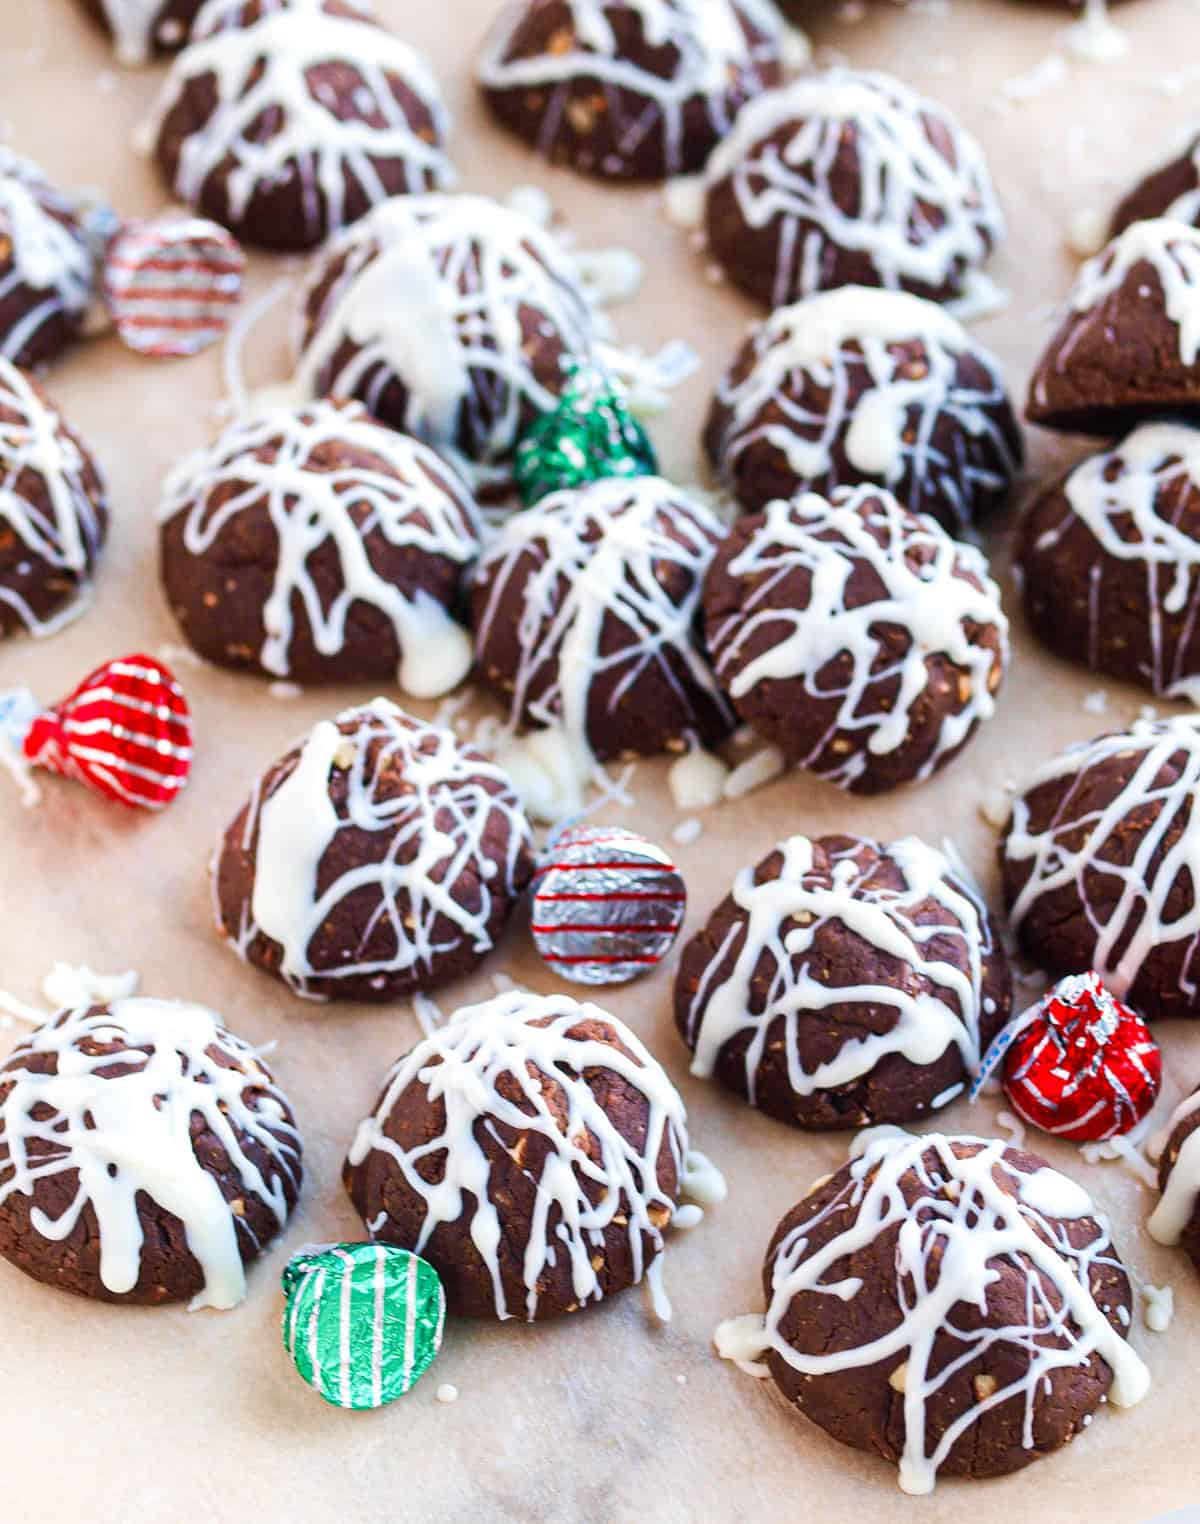 A pile of fudgy bonbons on a piece of parchment  paper with hershey's hugs between them